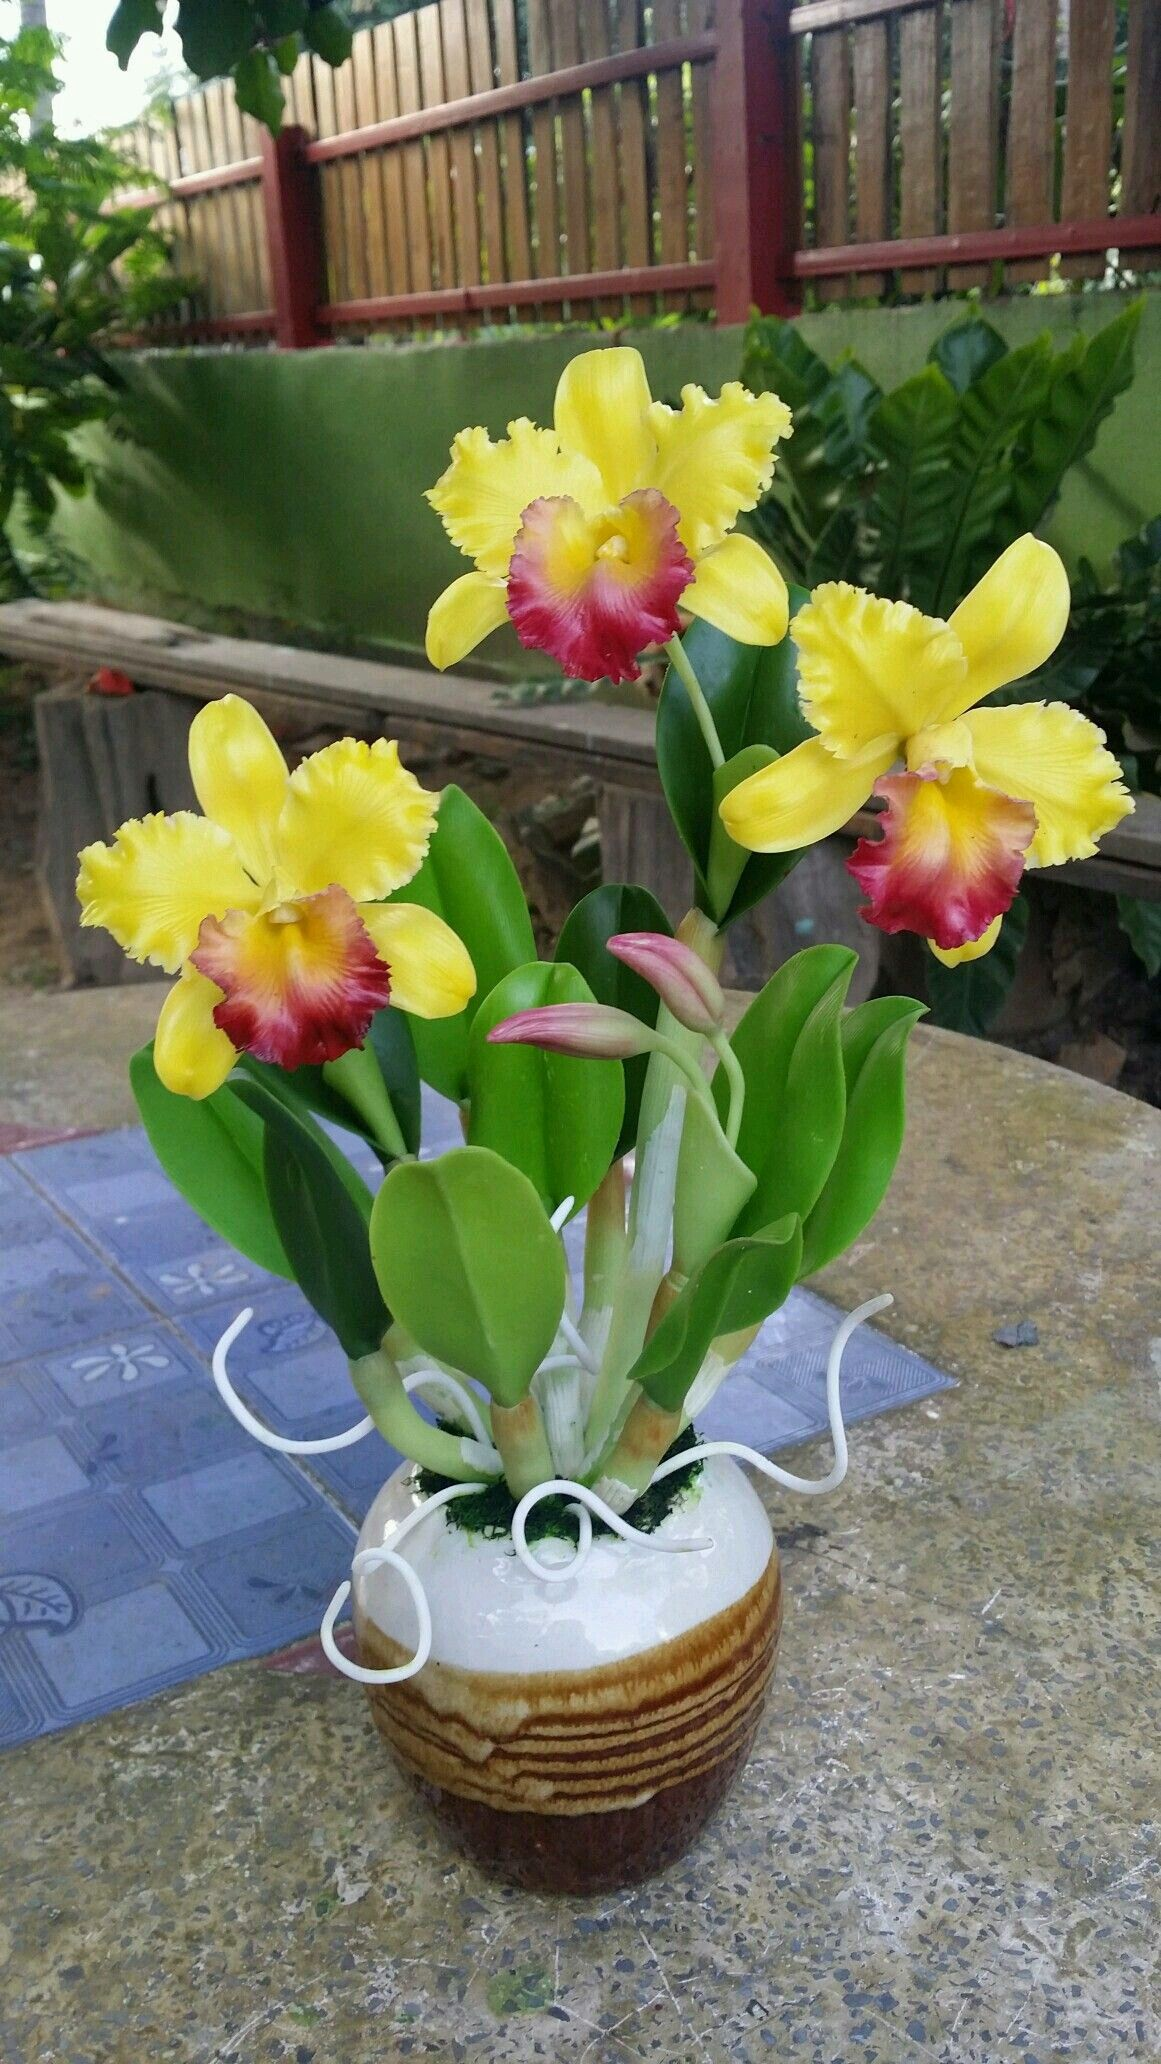 Pin By Flowers In Heart On Cattleya Orchids - Pinterest